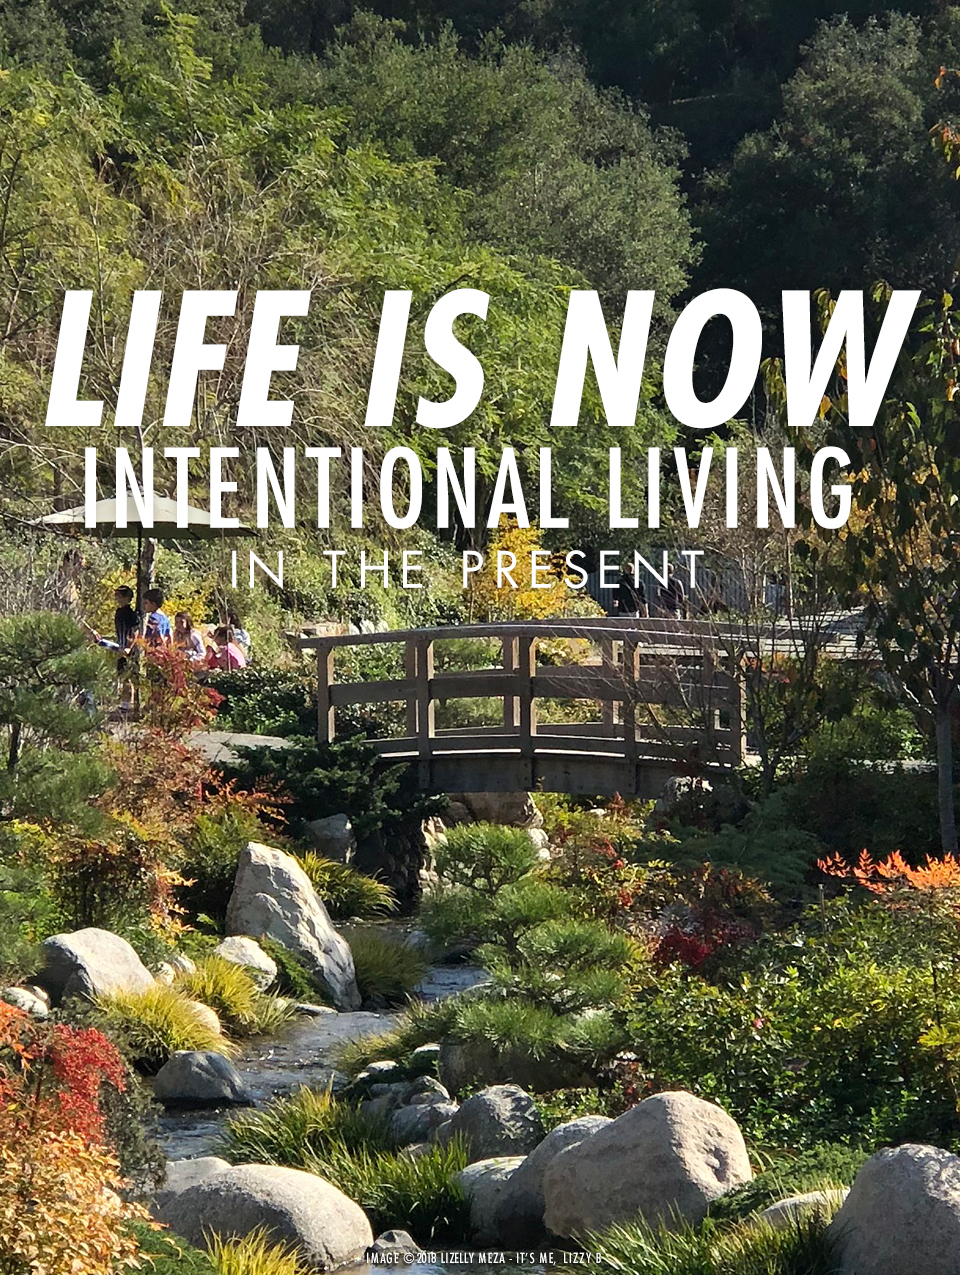 Life is NOW—Intentional Living in the Present Moment // It's Me, Lizzy B - Musings on Life, Business, & The Pursuit of Curiosity // Personal blog of Lizelly Meza